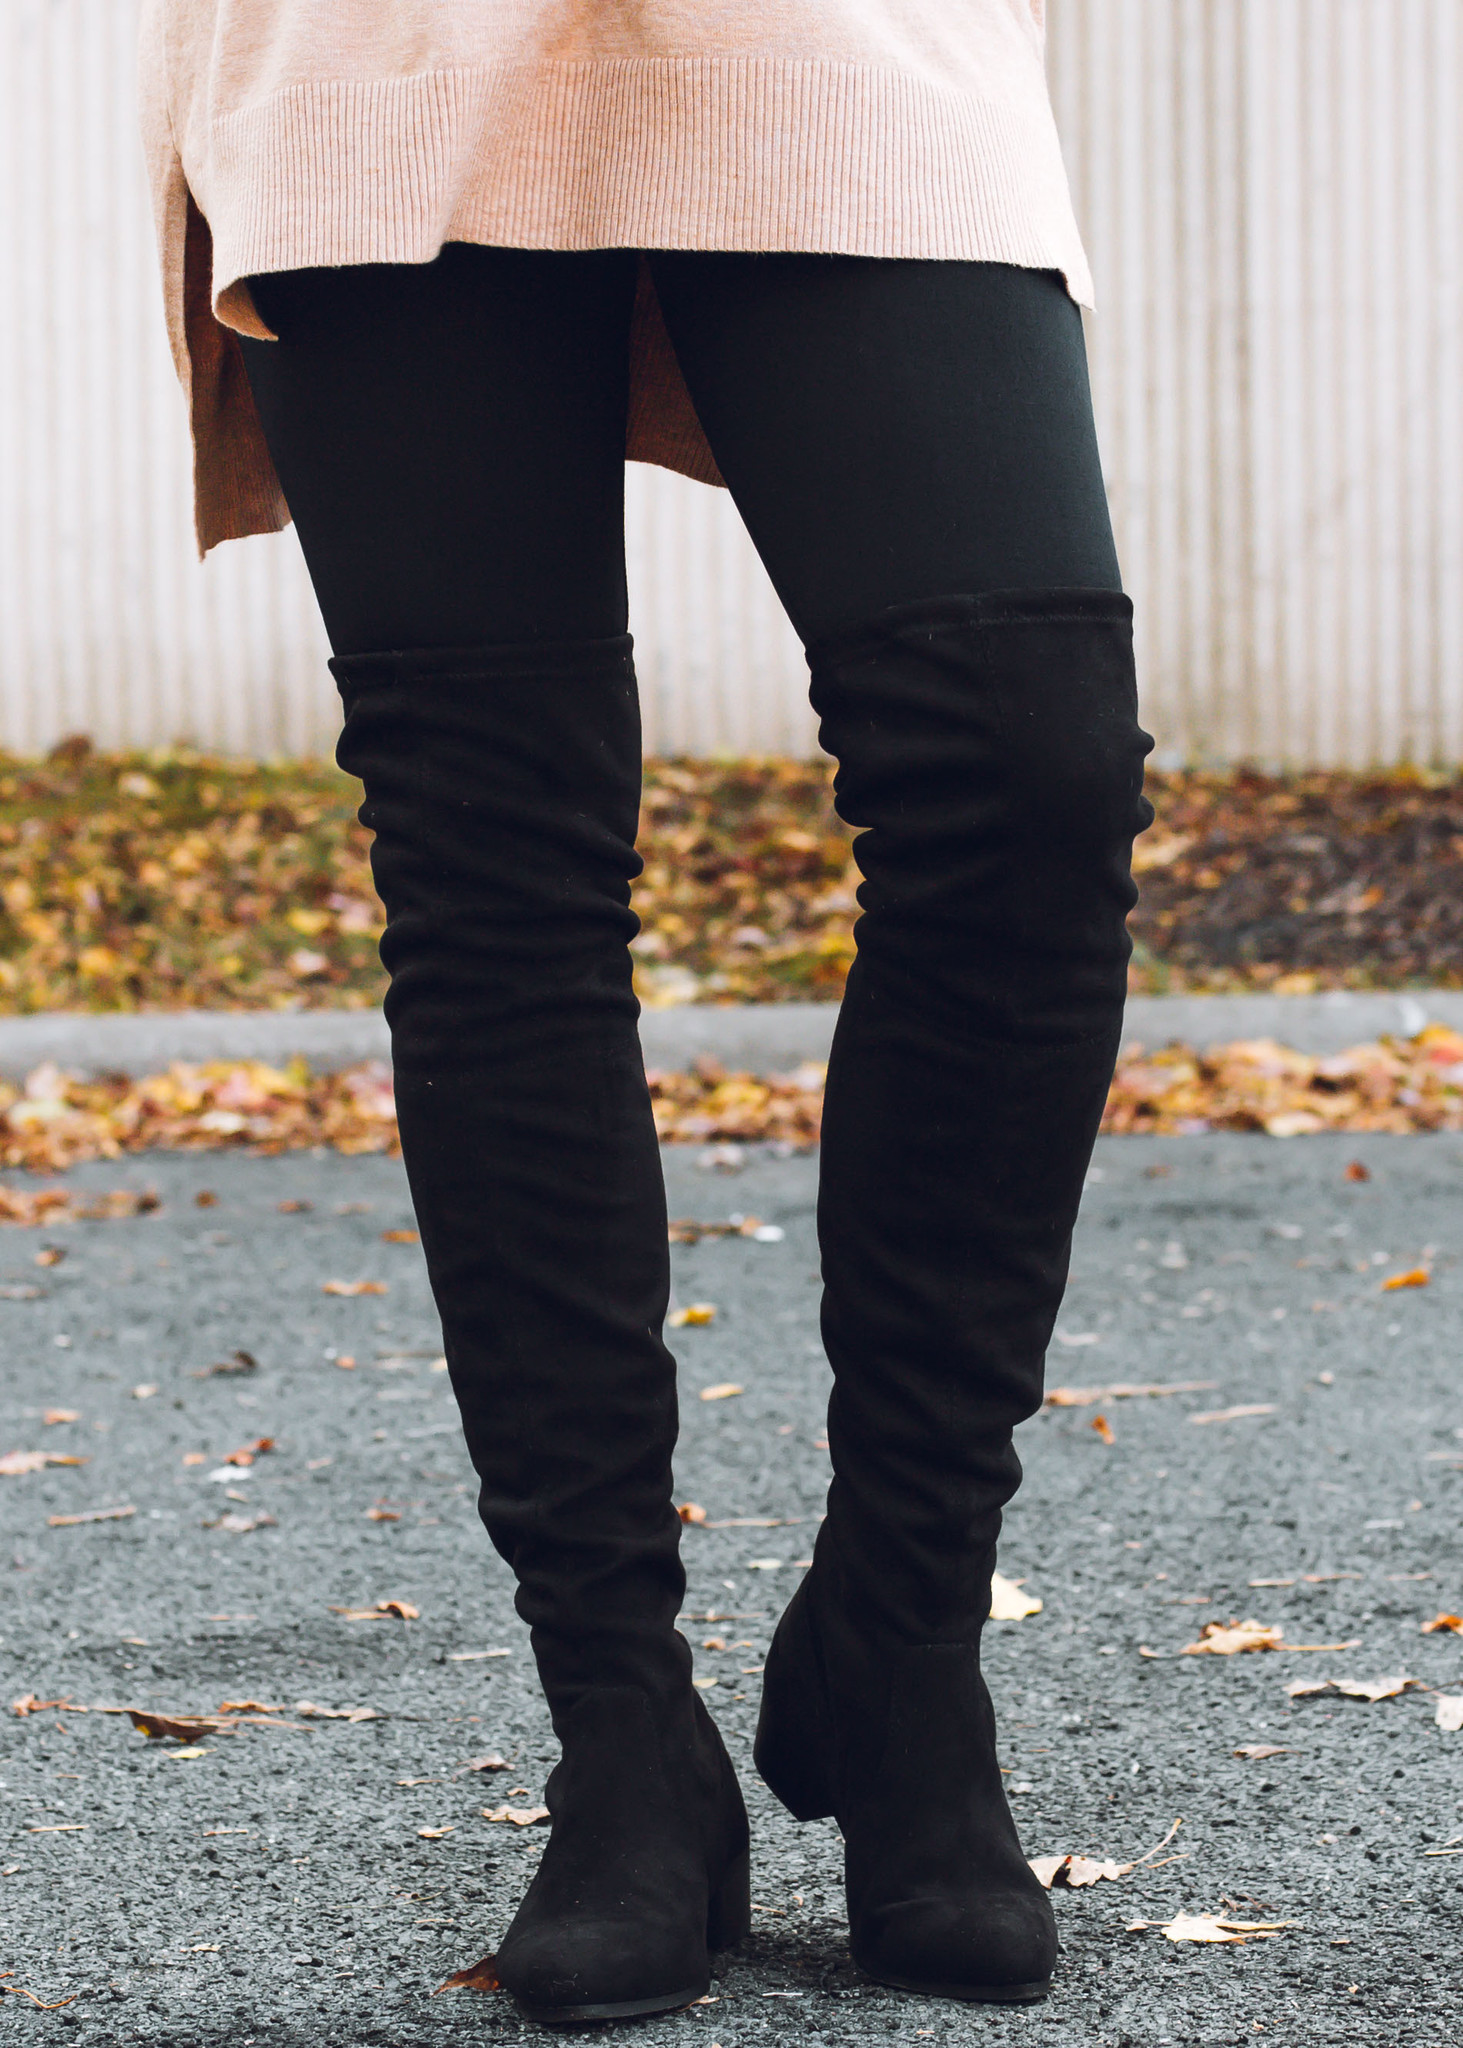 UPGRADE OVER THE KNEE BOOTS